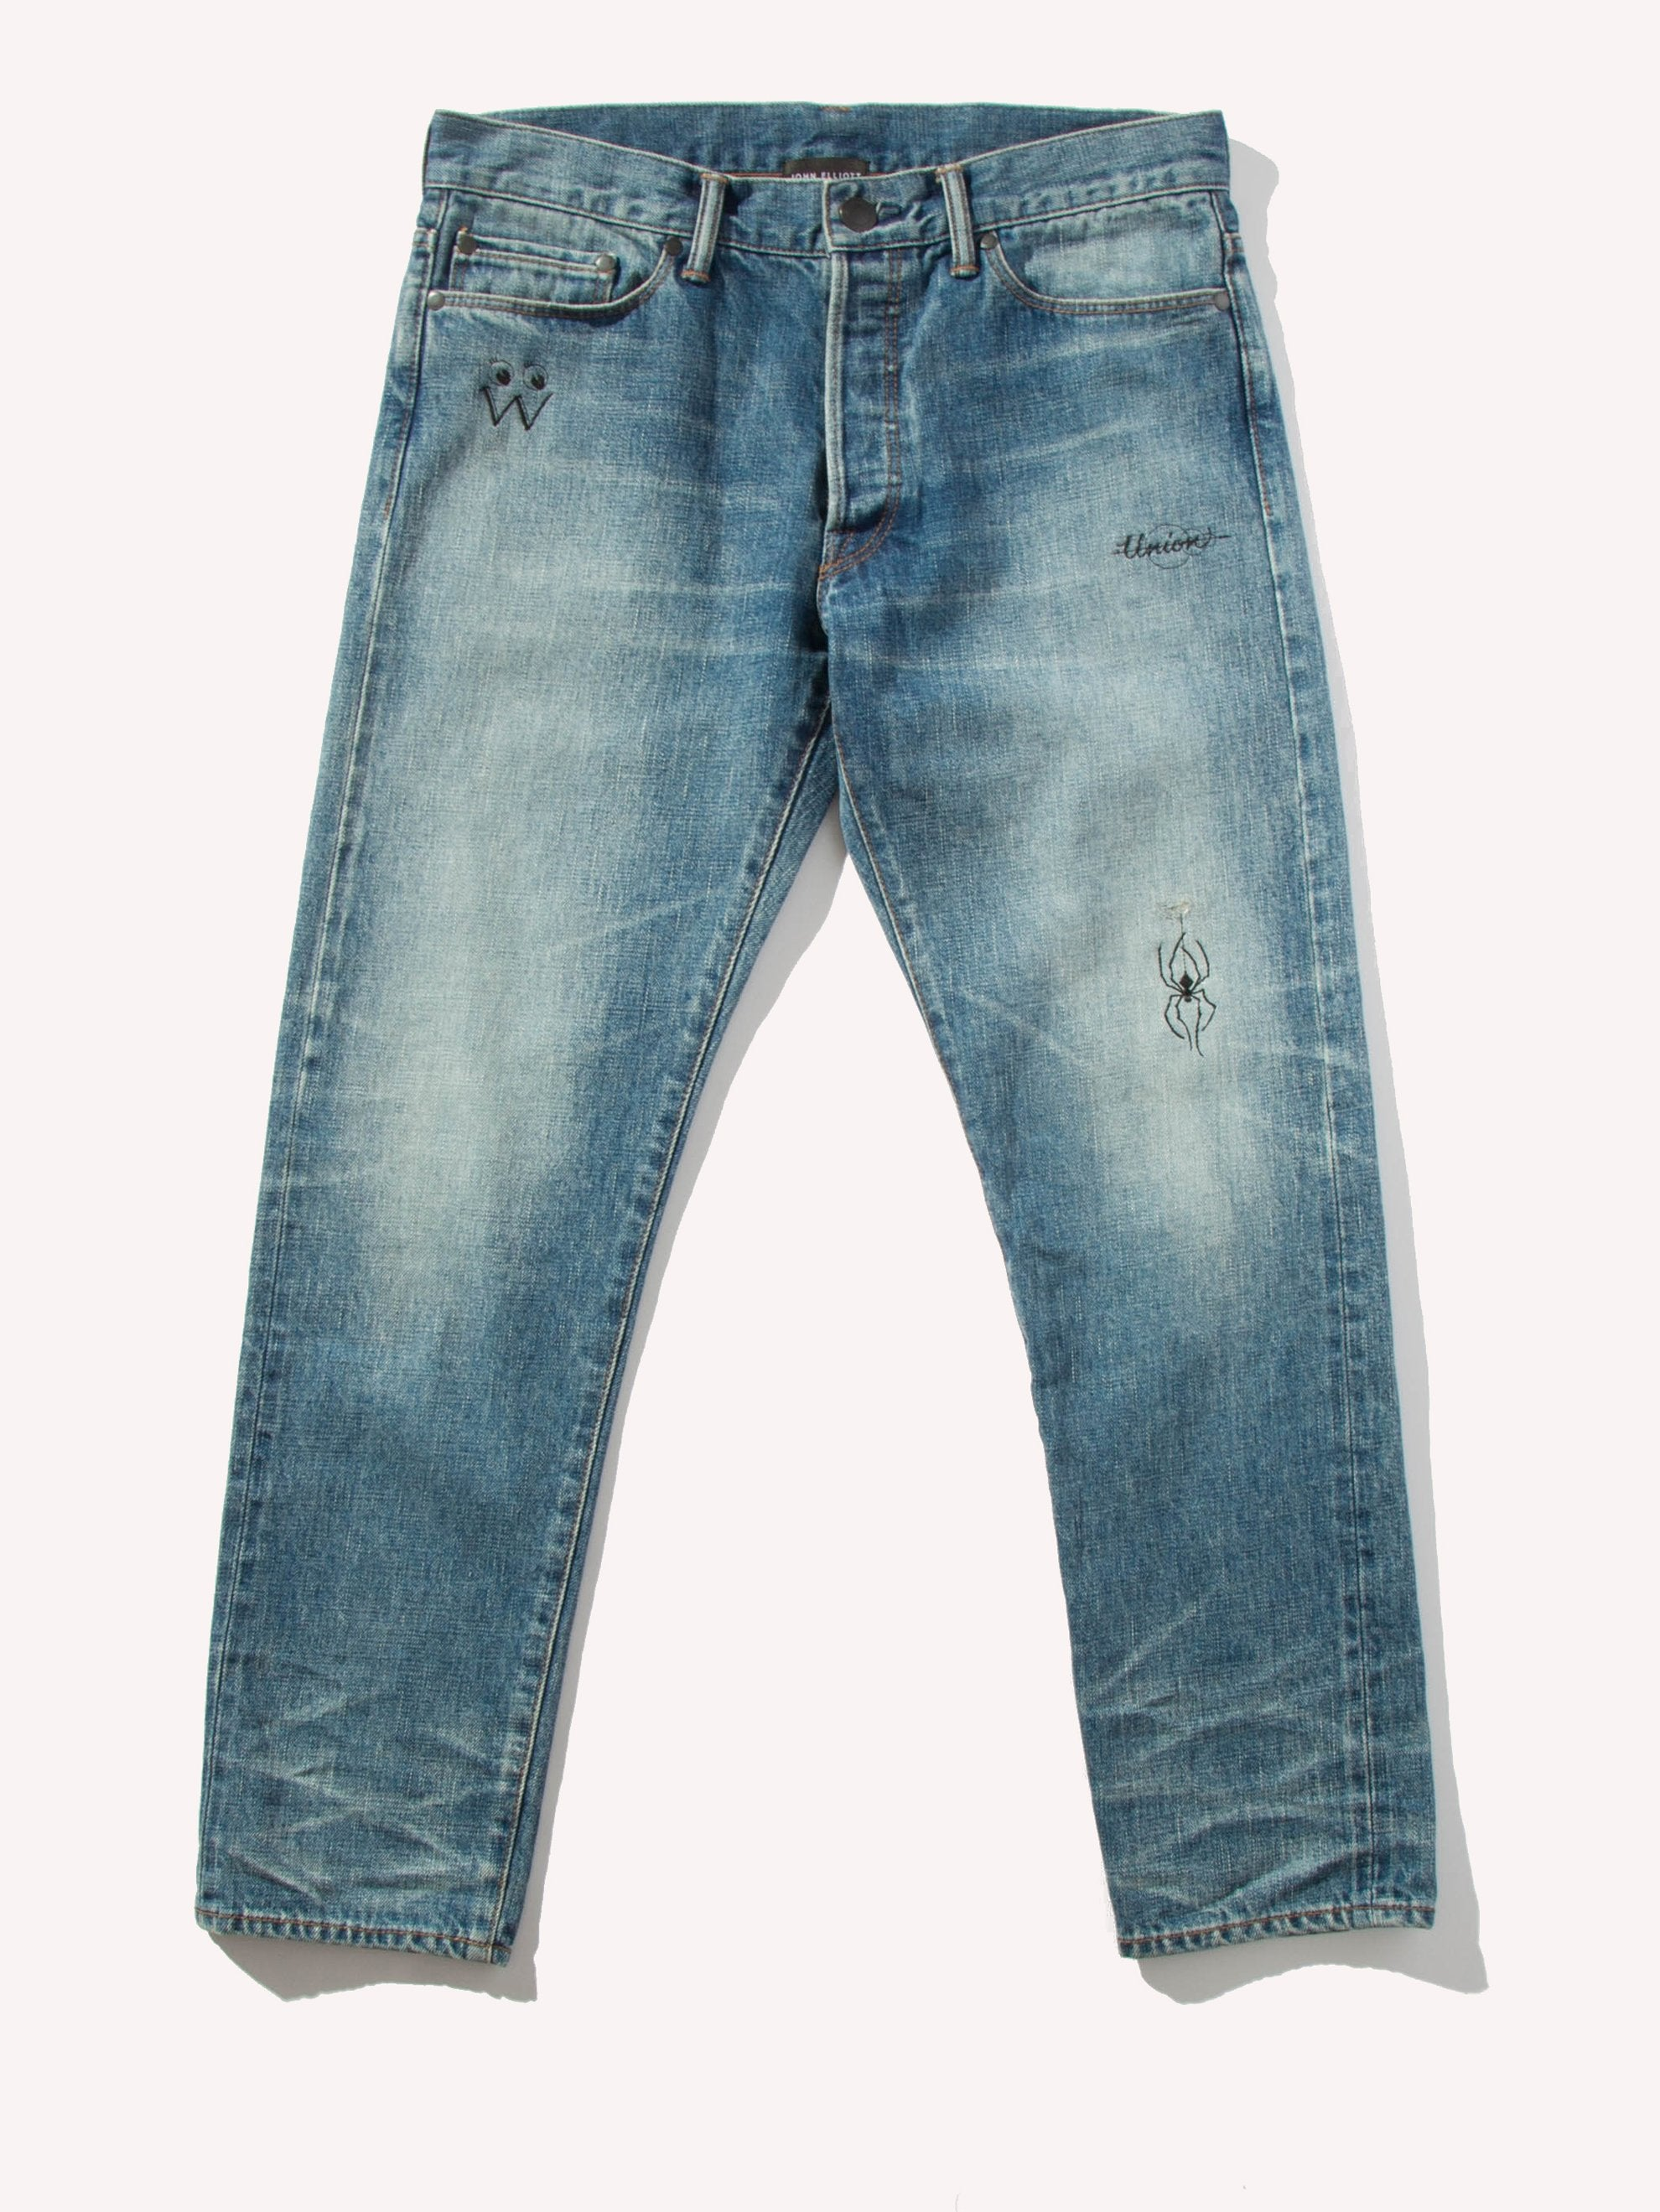 Cropped Denim Jeans (John Elliott x Dr. Woo UNION Capsule)